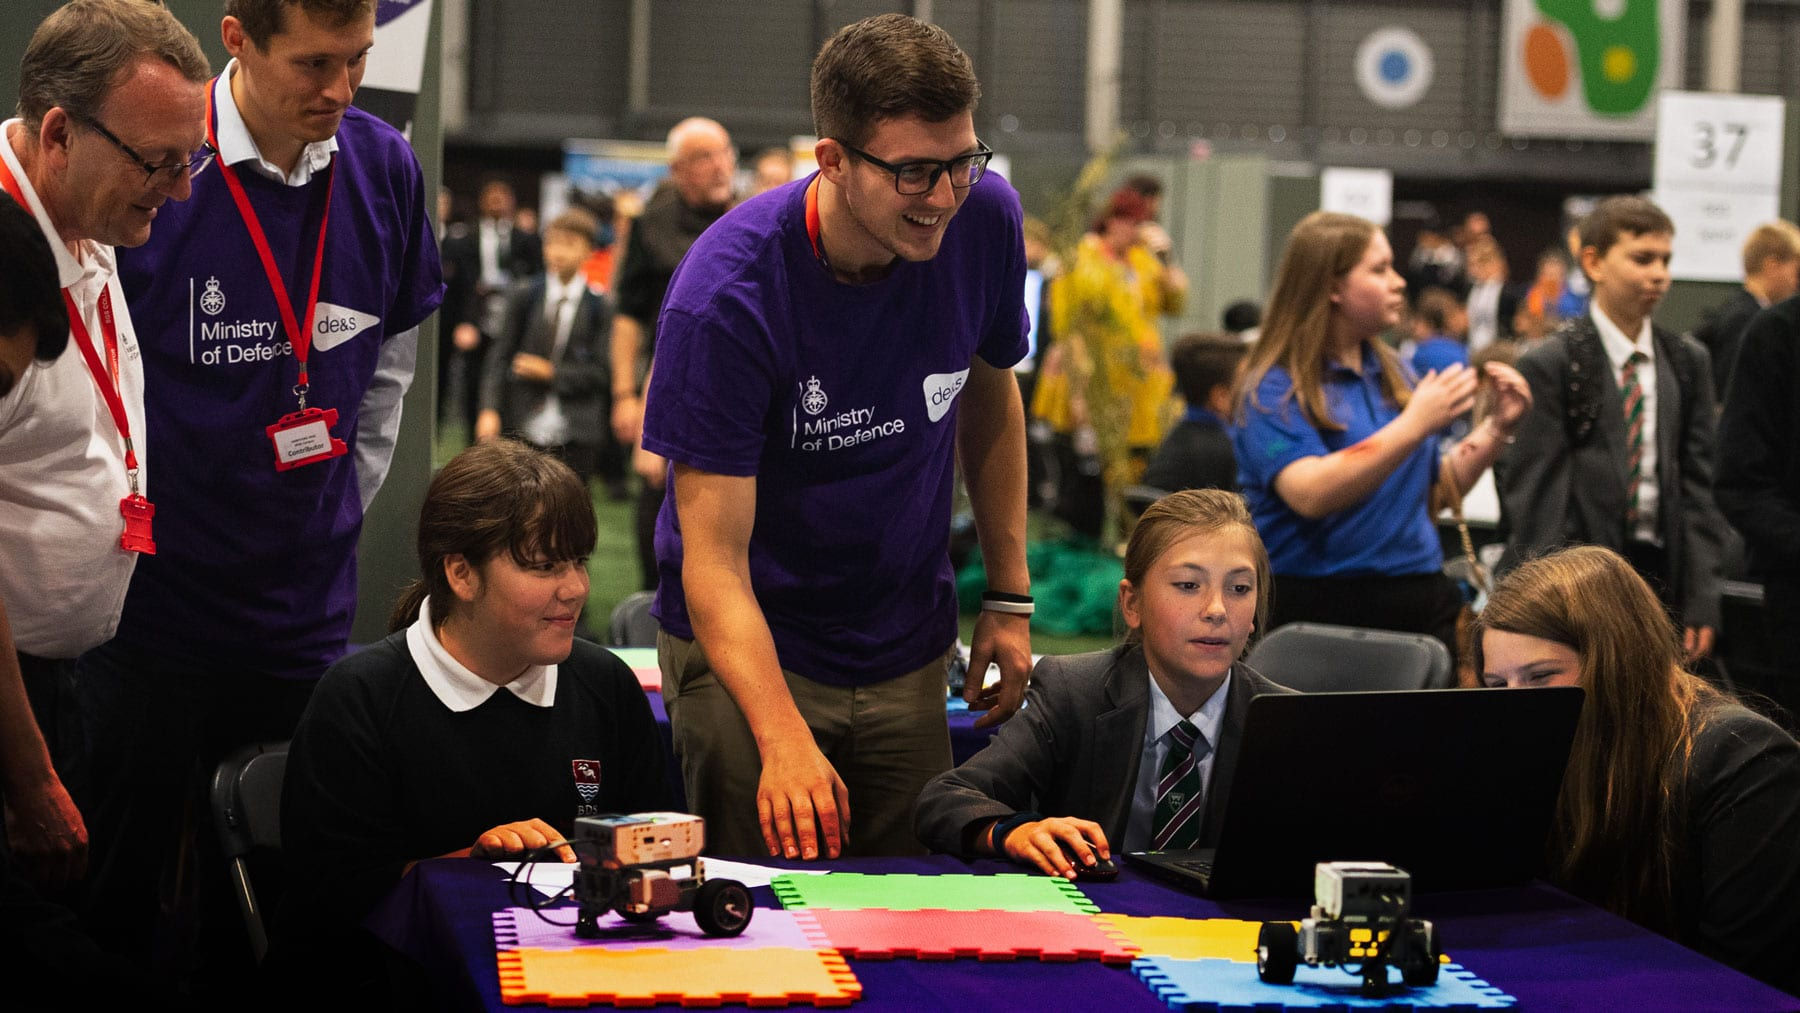 STEM event Bristol